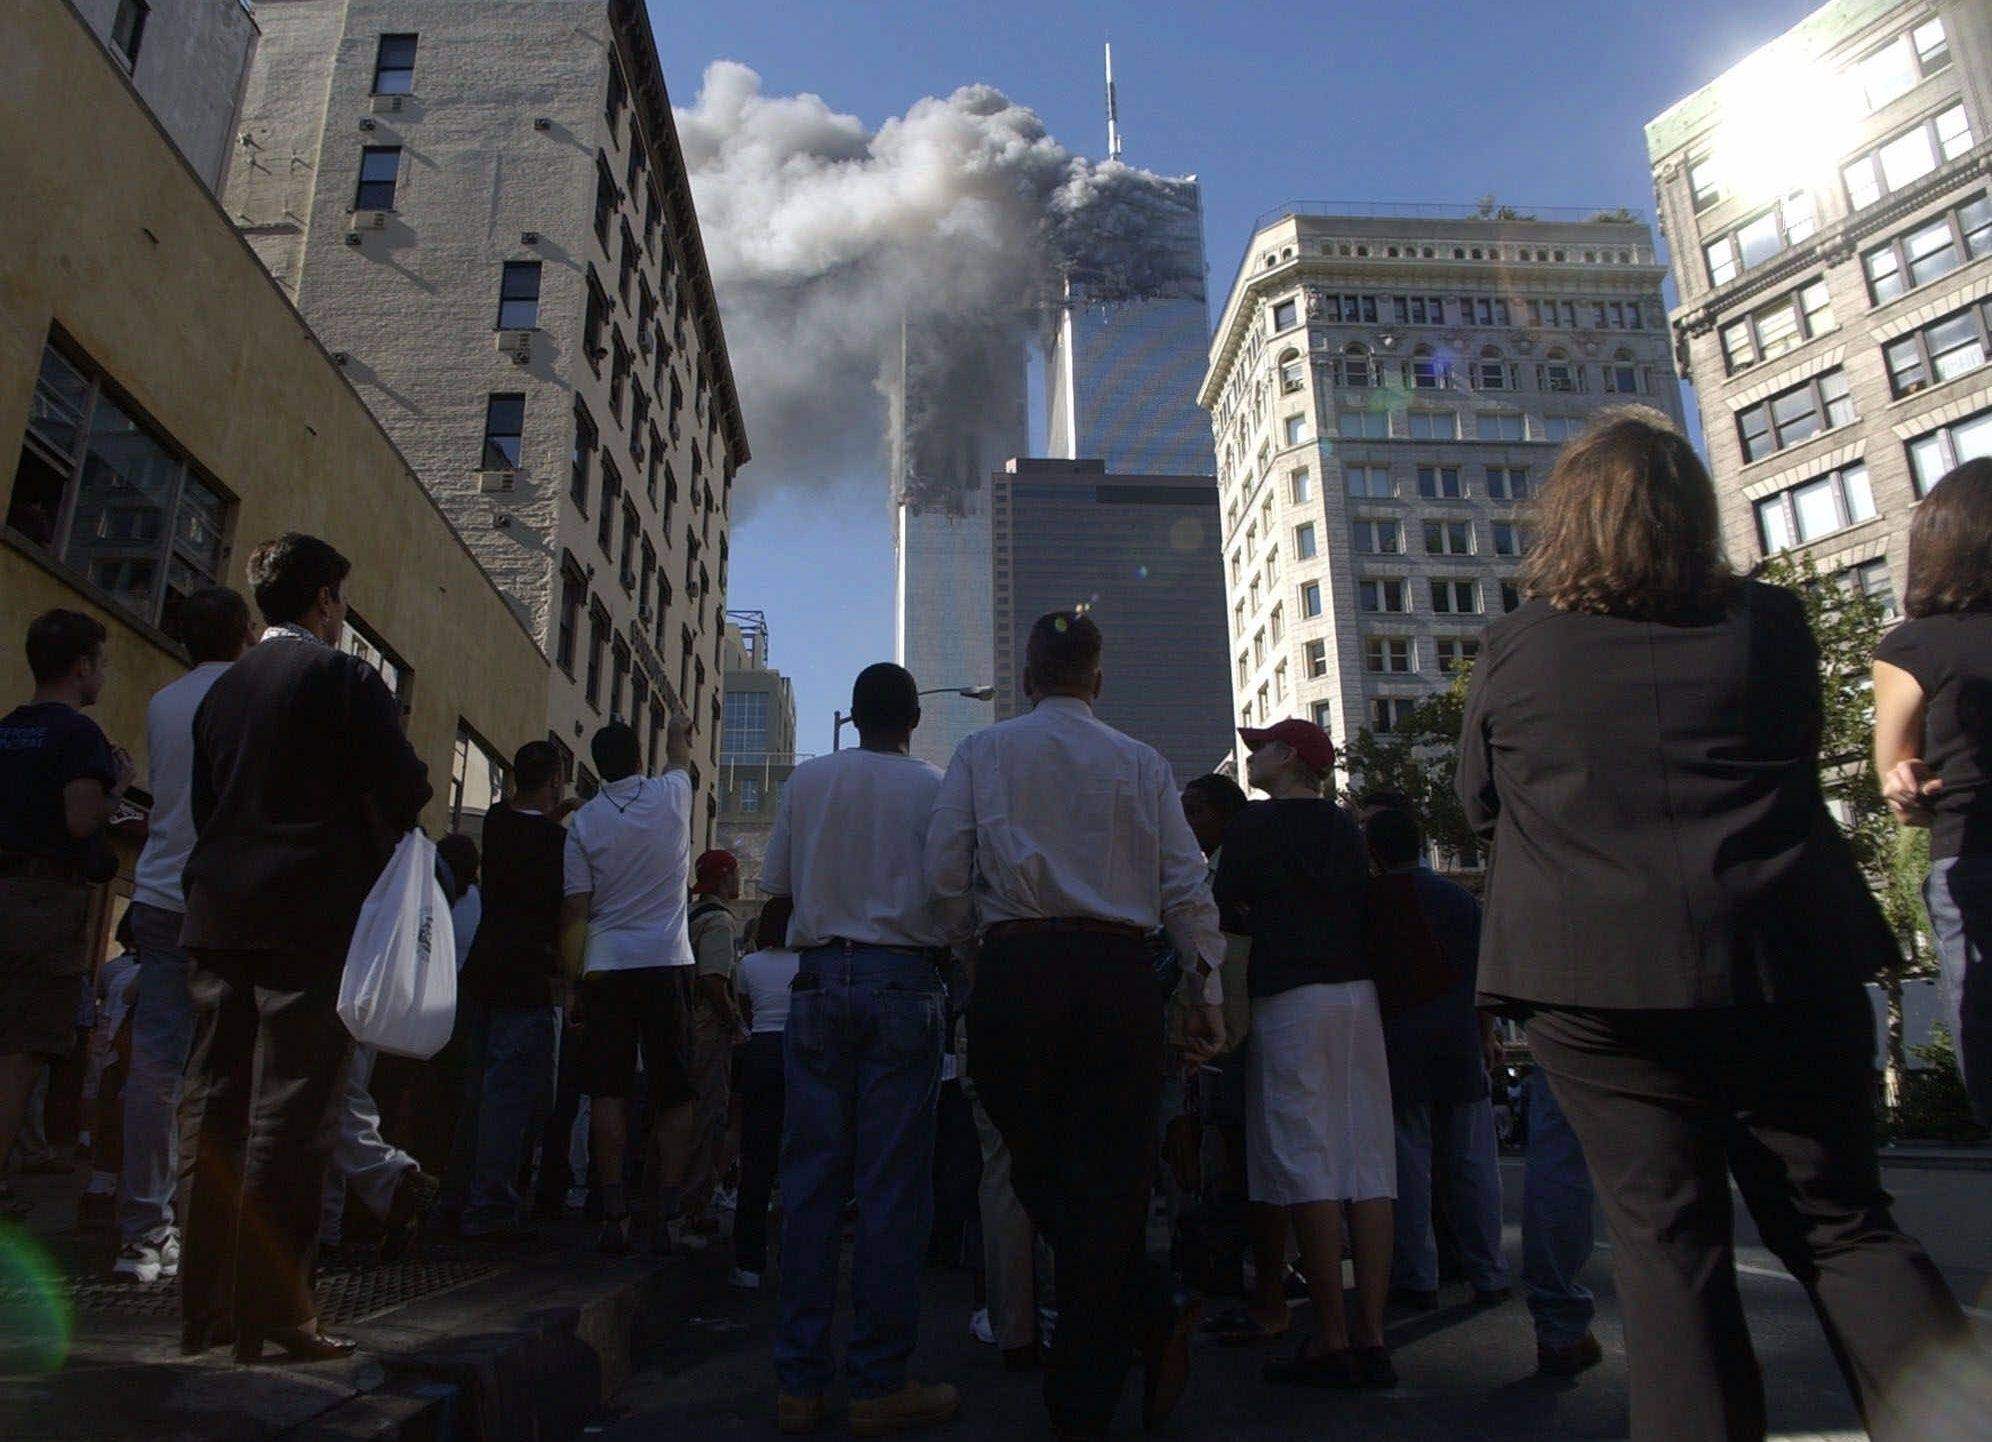 Essay: Reliving instead of remembering Sept. 11